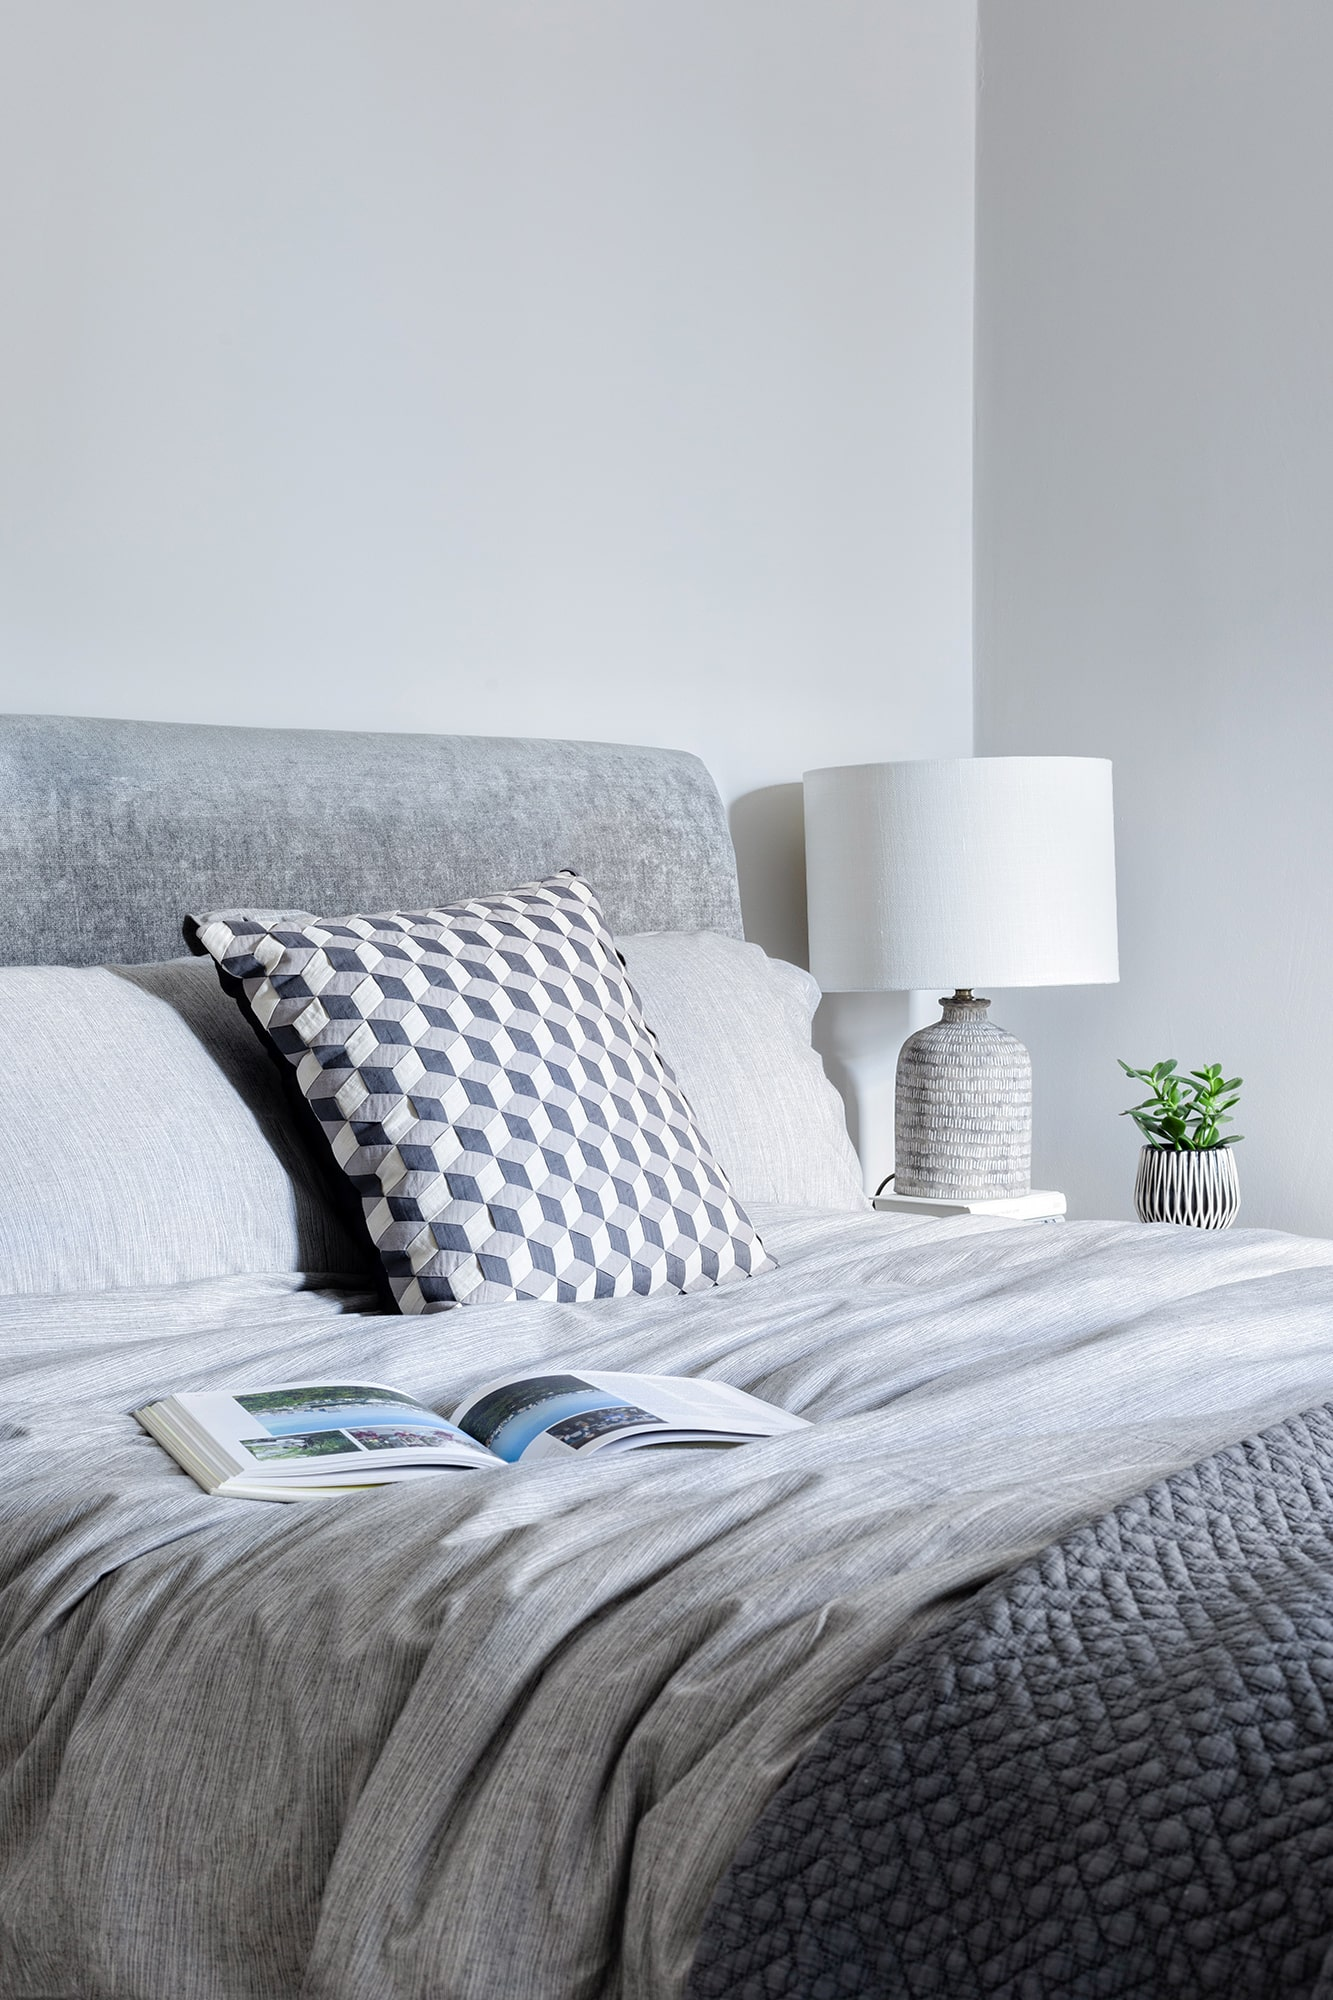 detail interior shot: grey walls, grey velvet bed; white lamp and plant on the bedside table